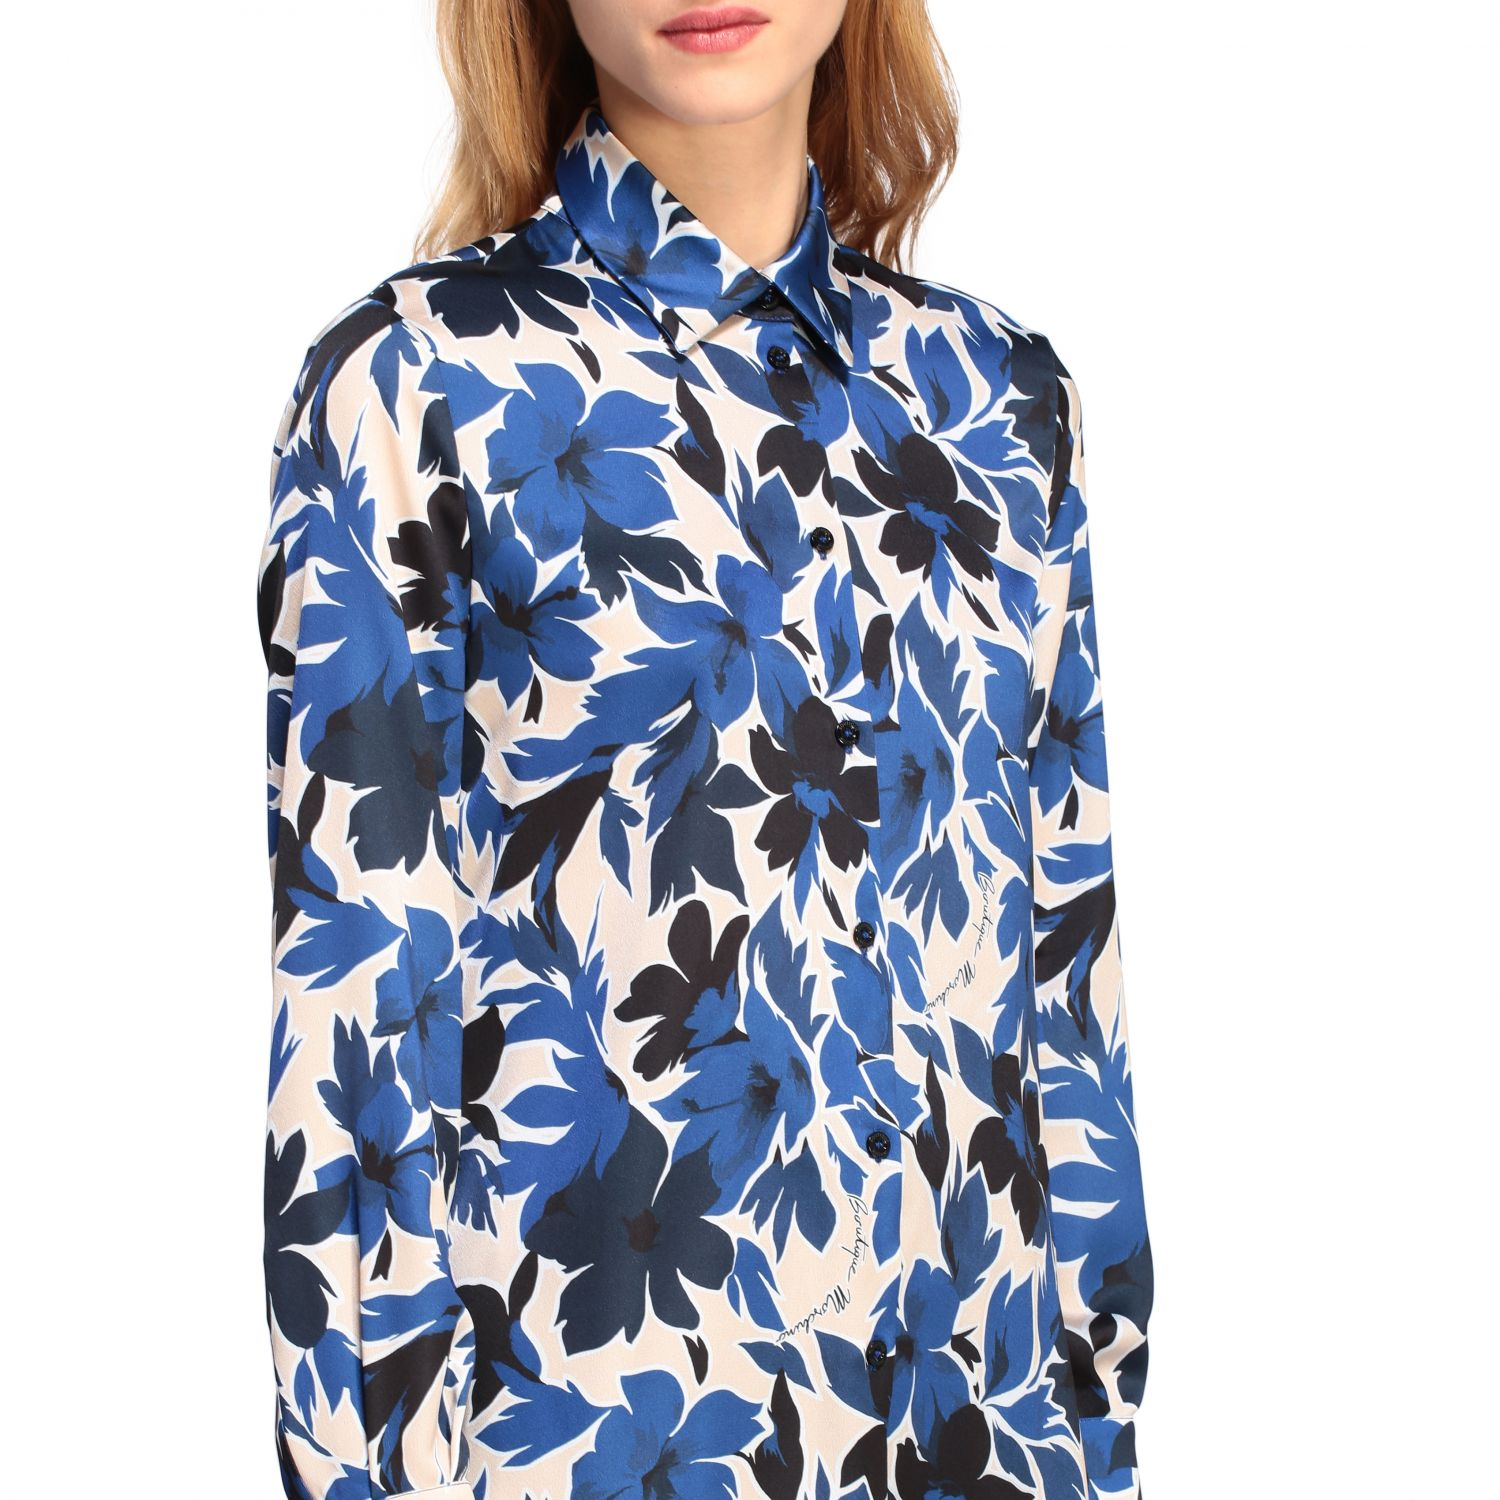 Shirt Boutique Moschino: Shirt women Boutique Moschino blue 5